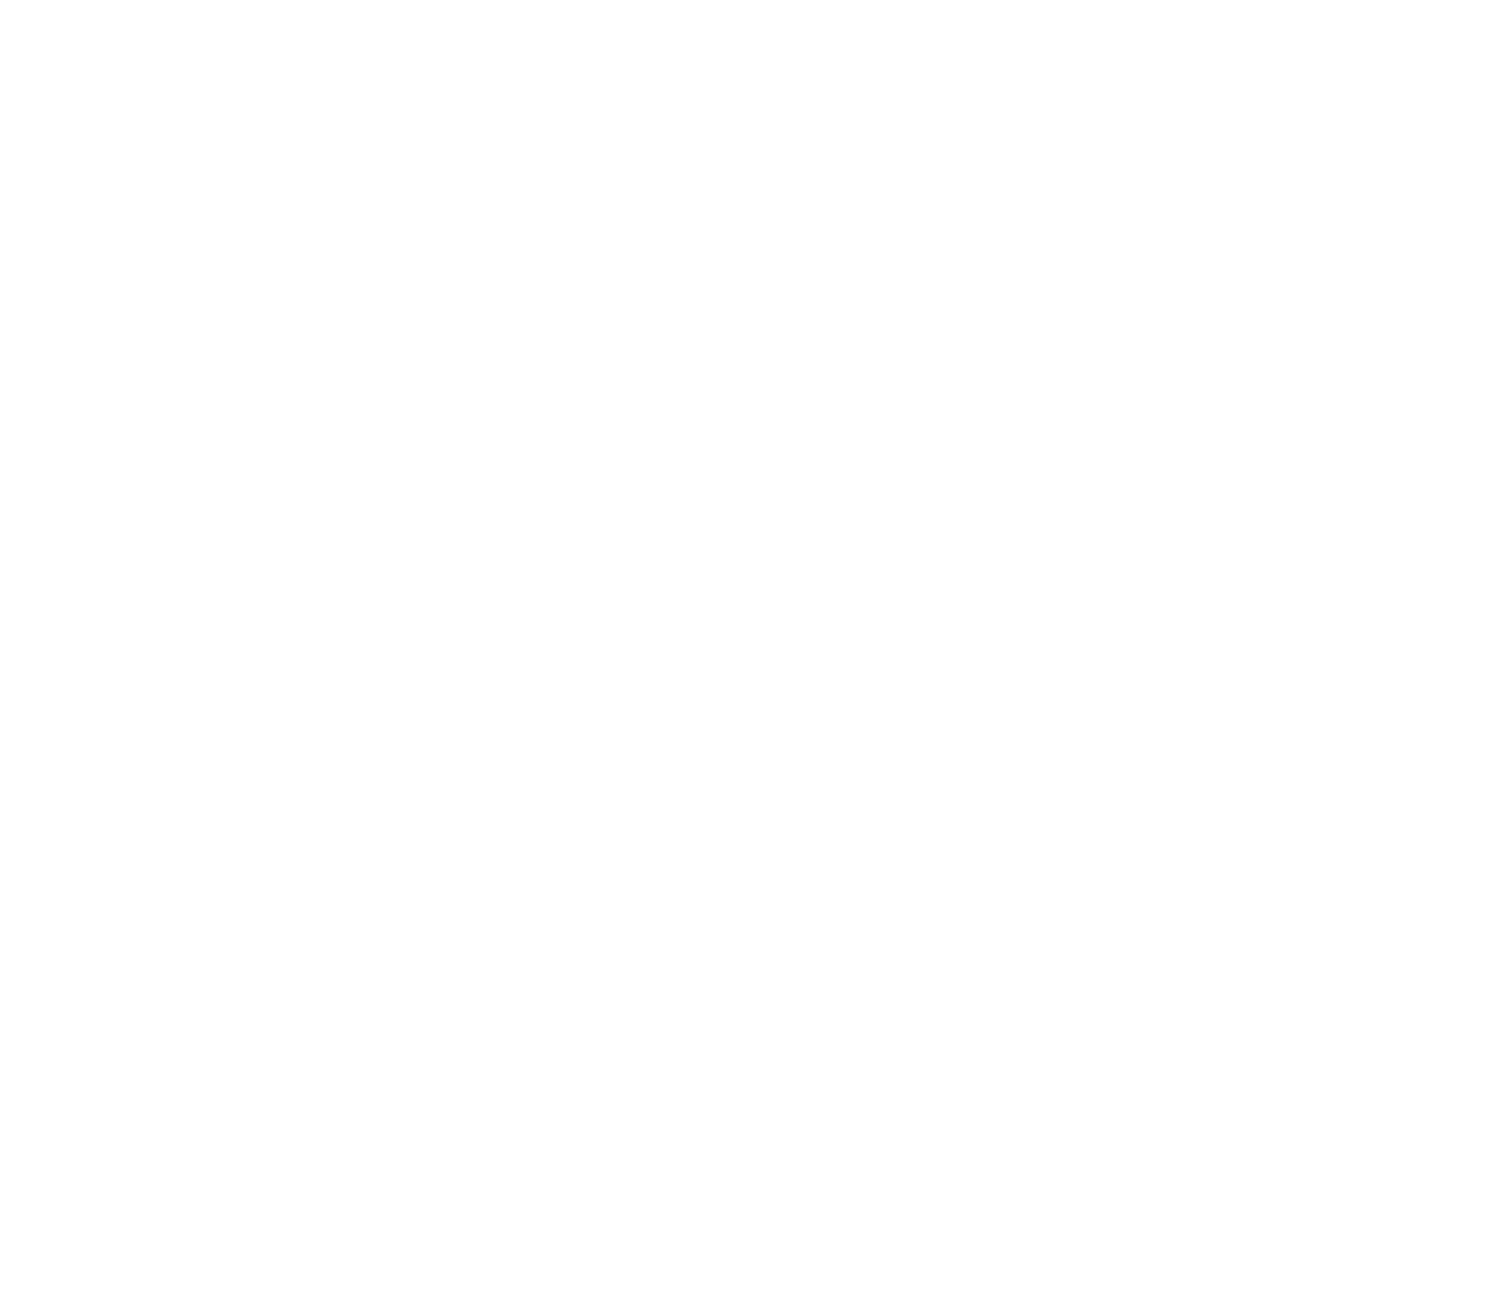 The Ritz-Carlton Residences, Long Island, North Hills